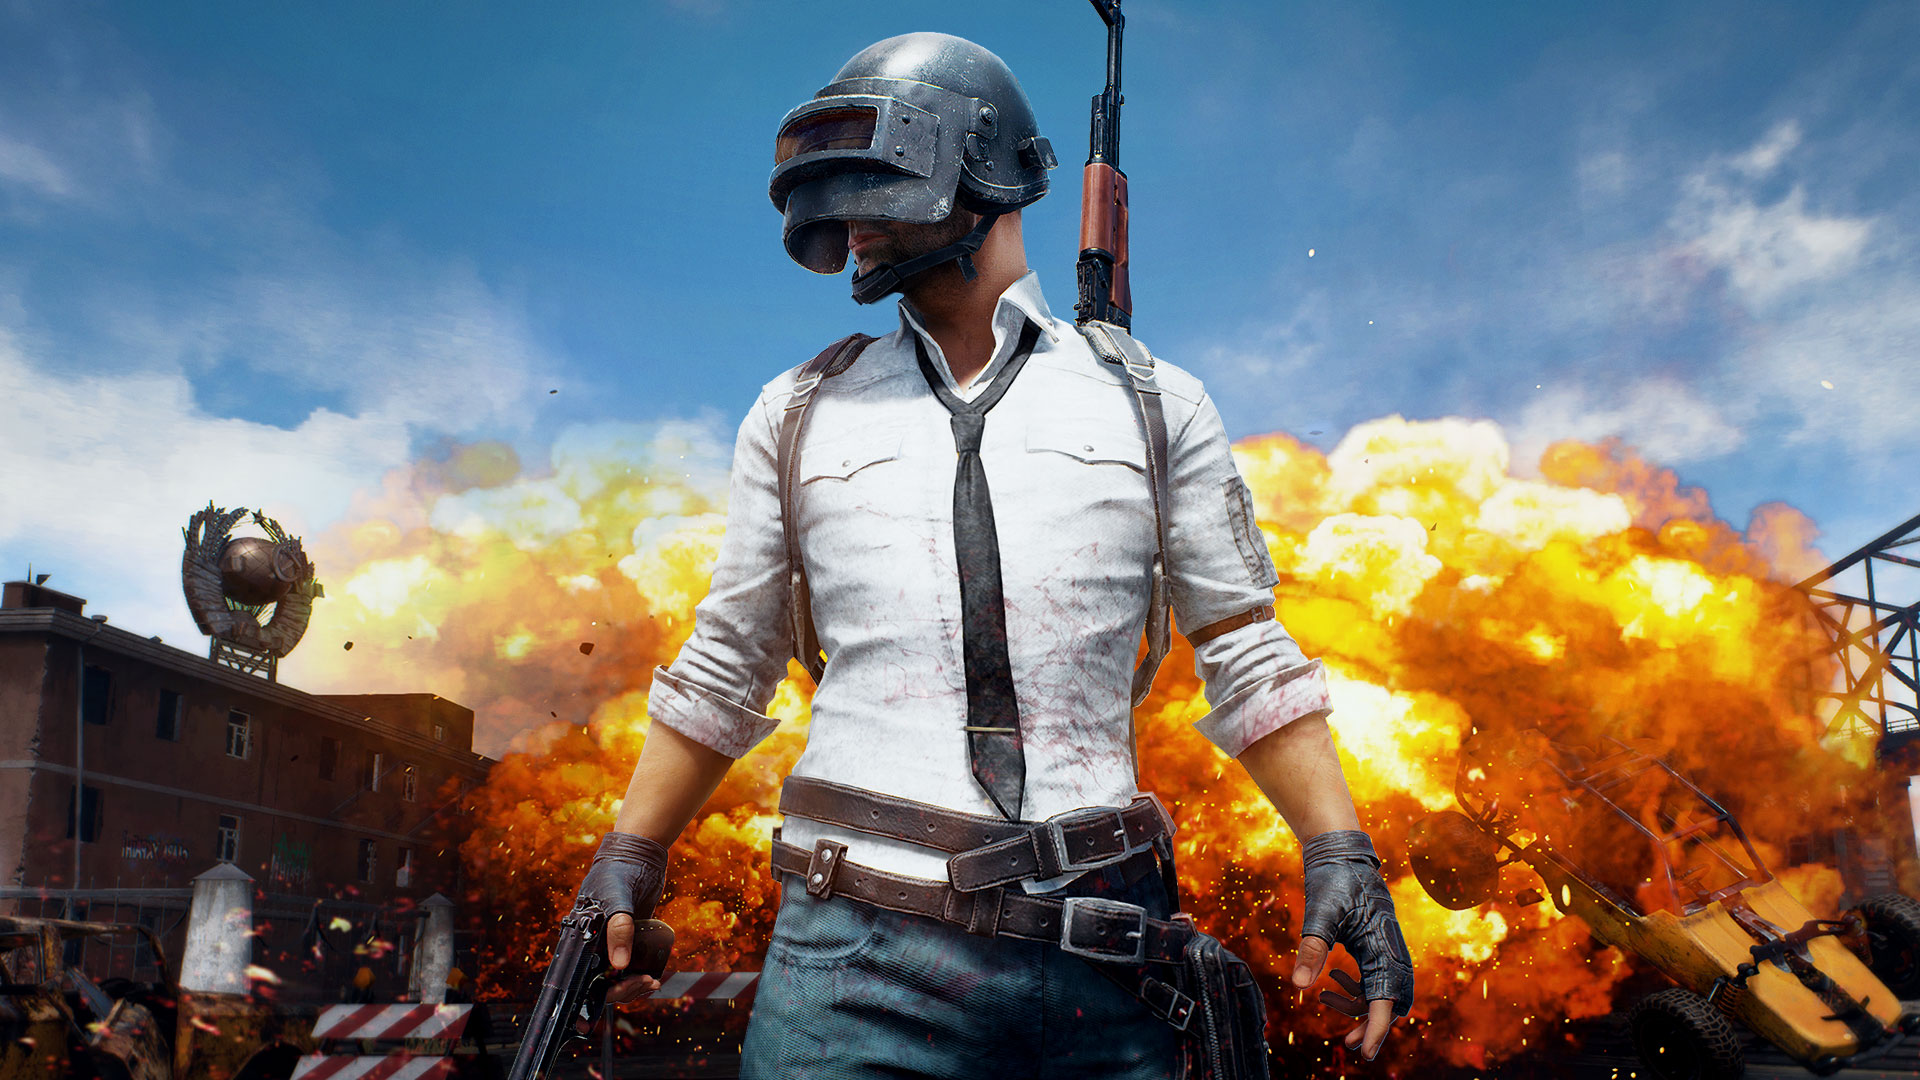 PUBG creator and PUBG Corp CEO to speak at View Conference